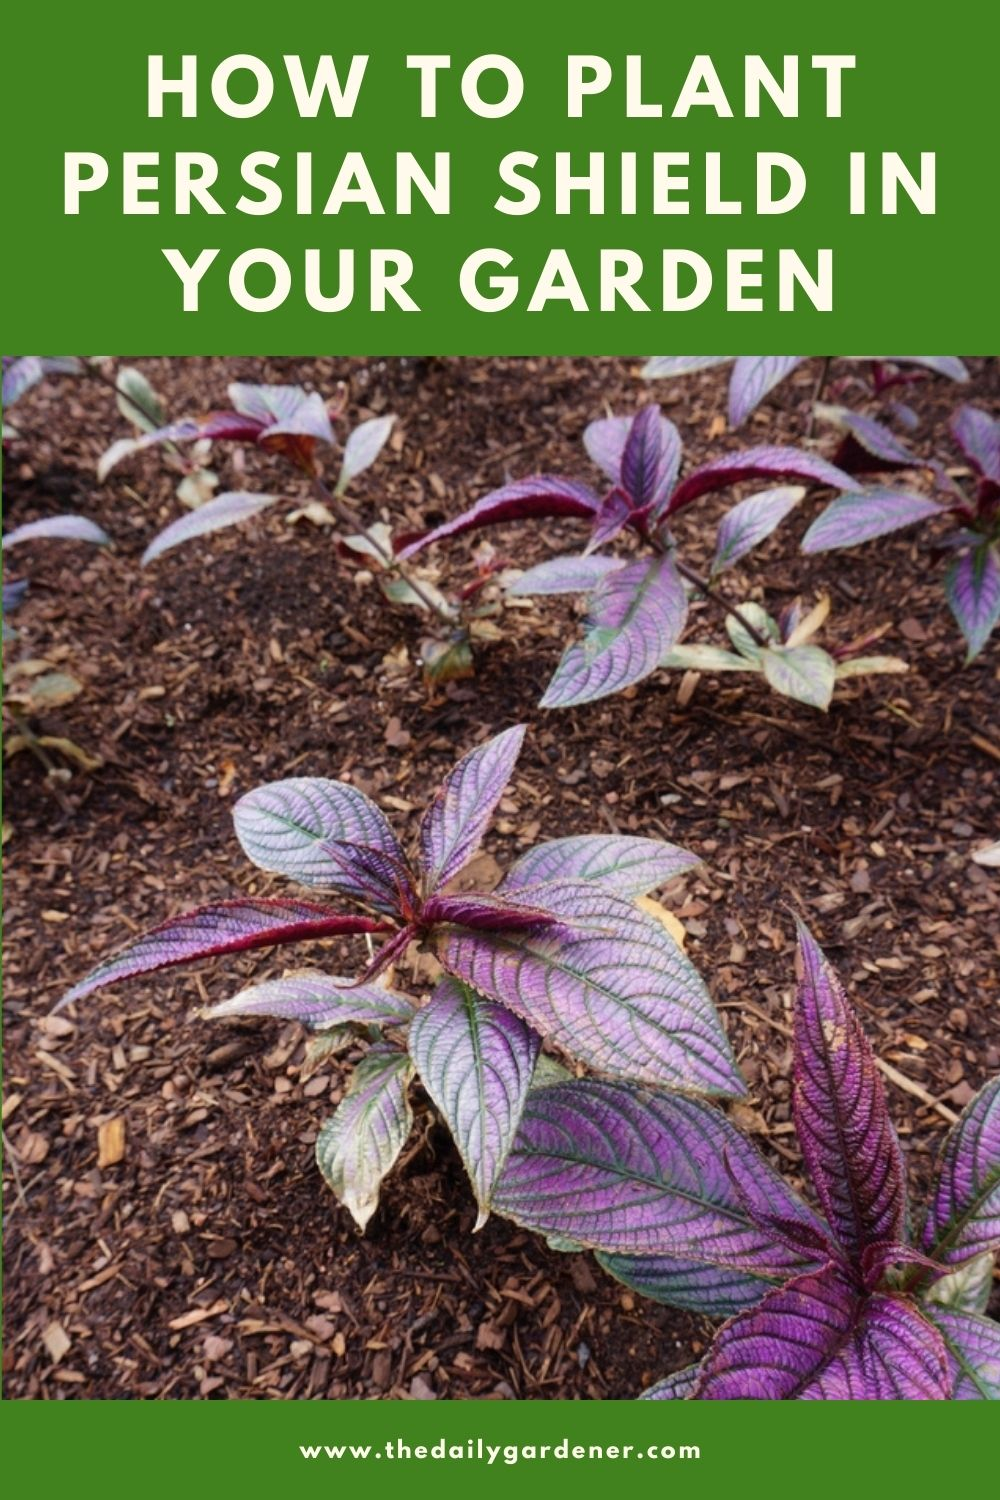 How to Plant Persian Shield in Your Garden (Tricks to Care!) 2